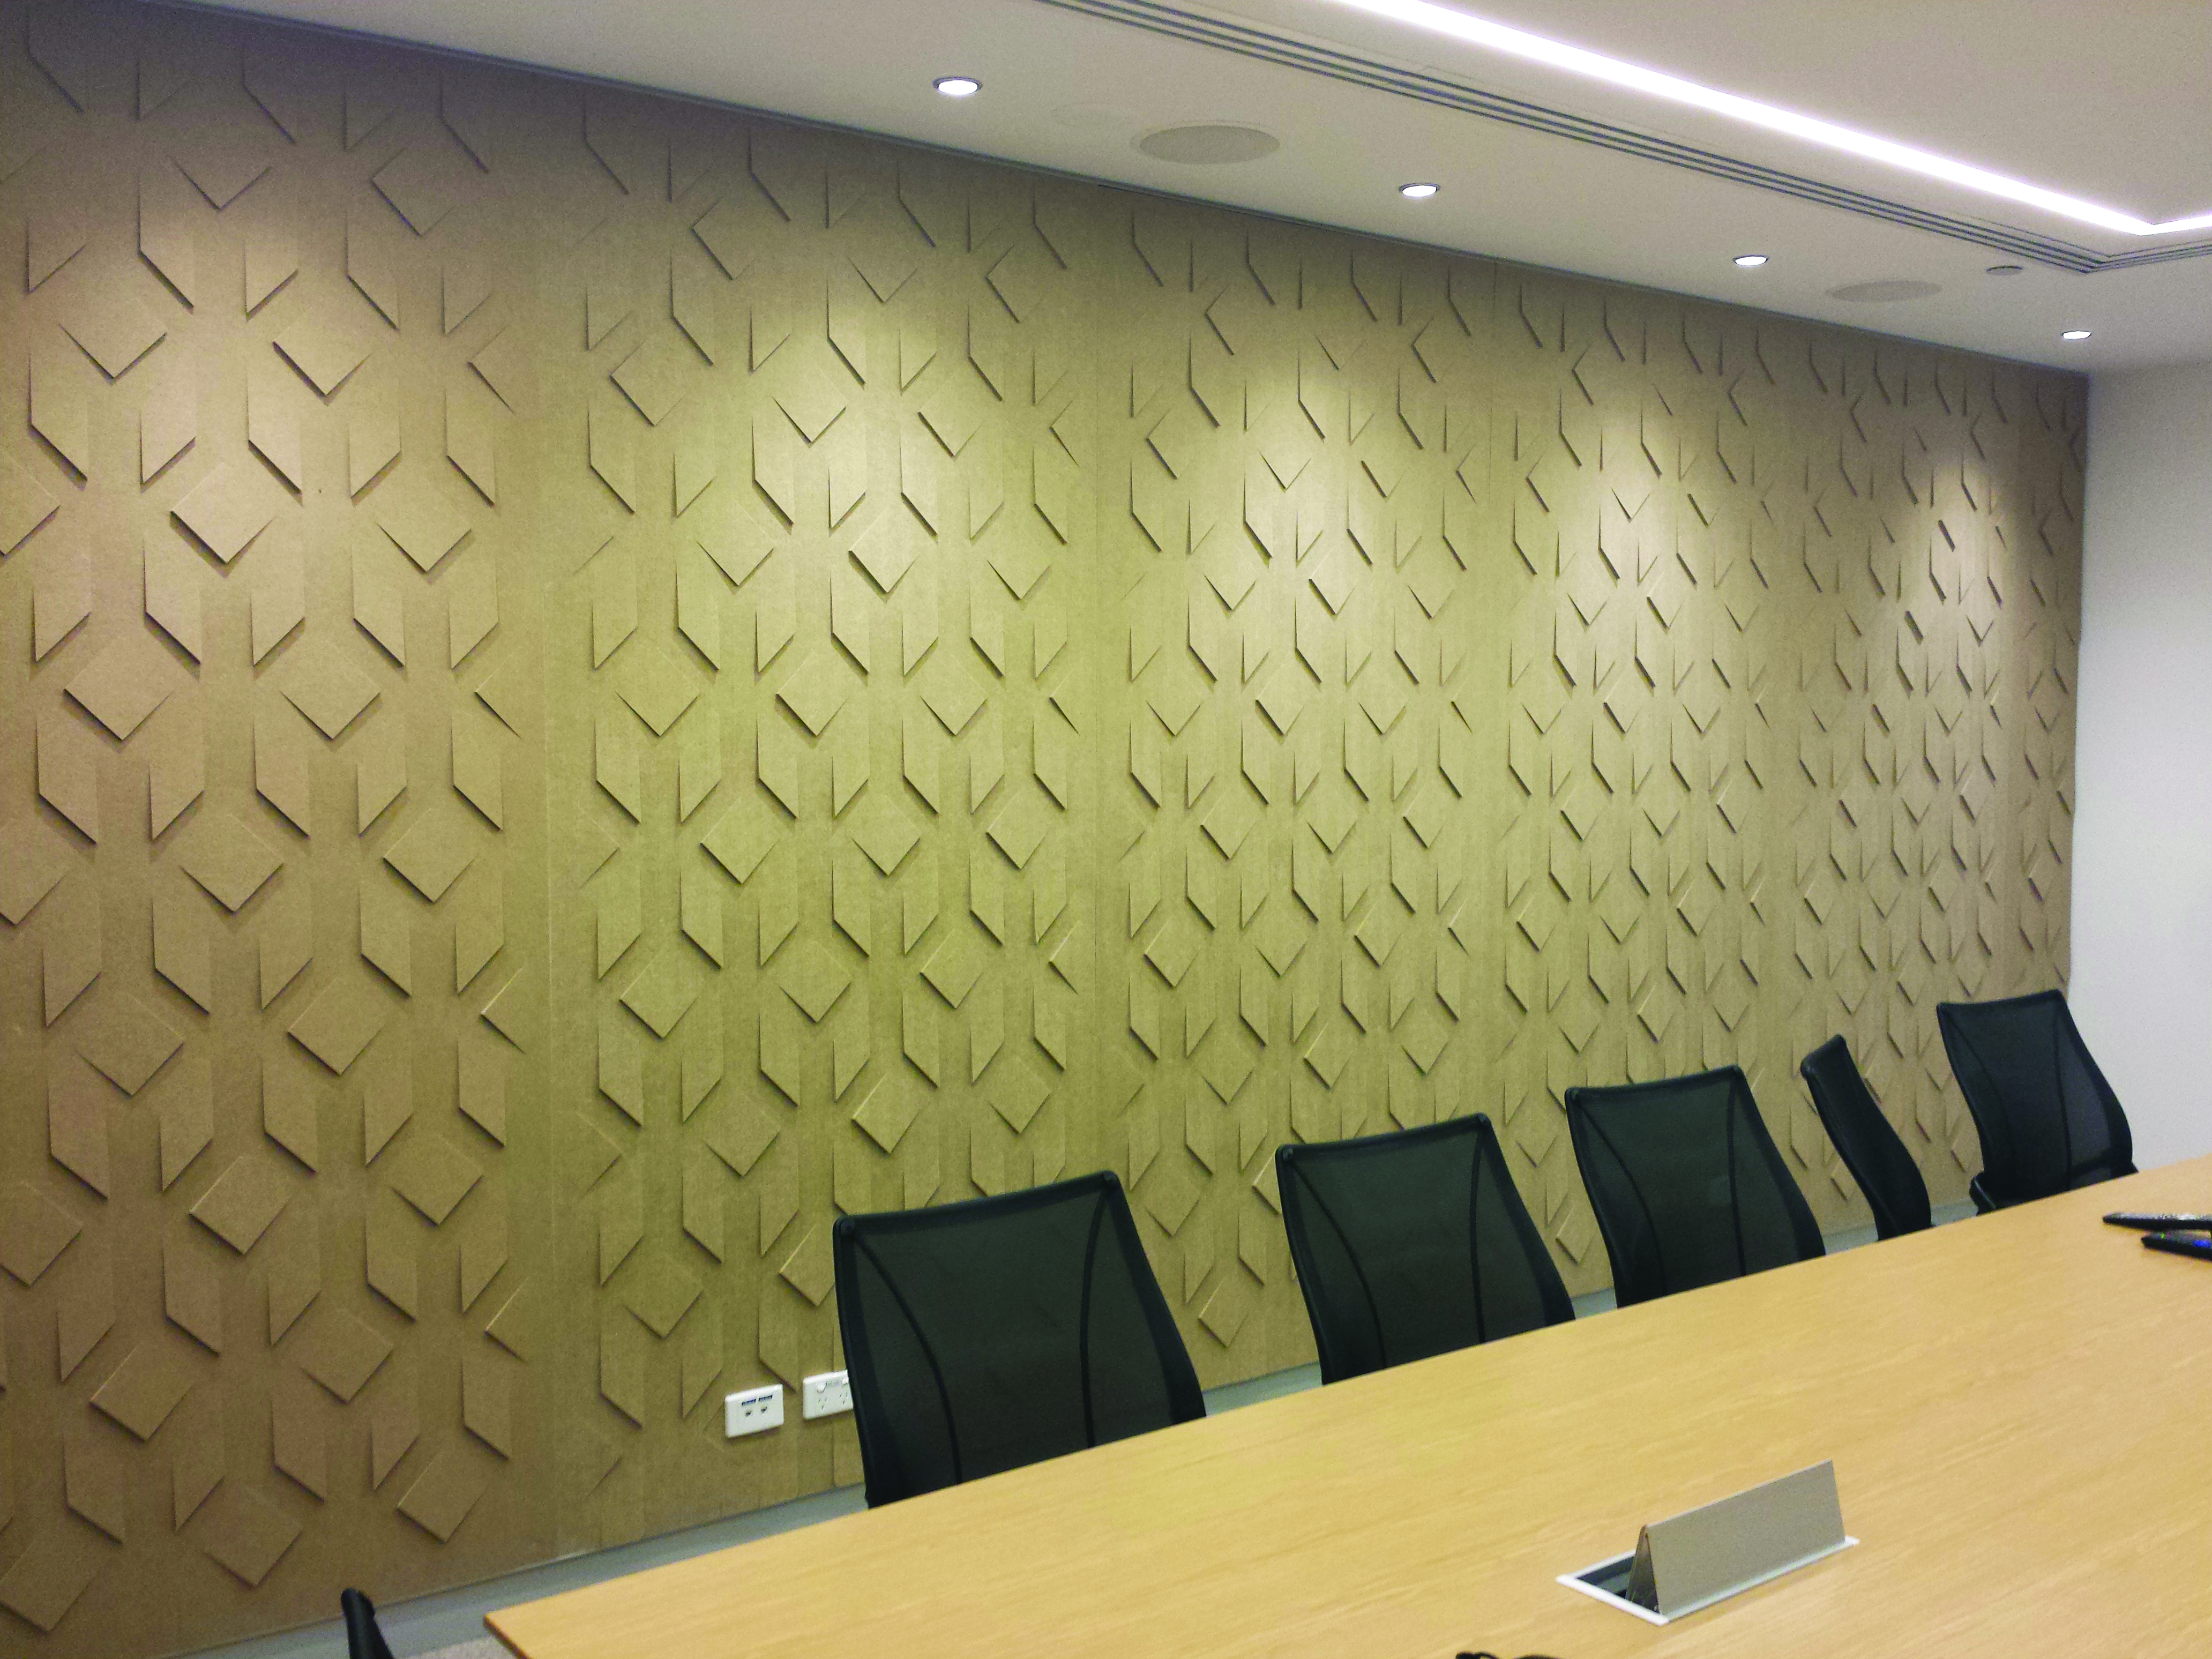 Modern, stylish panels